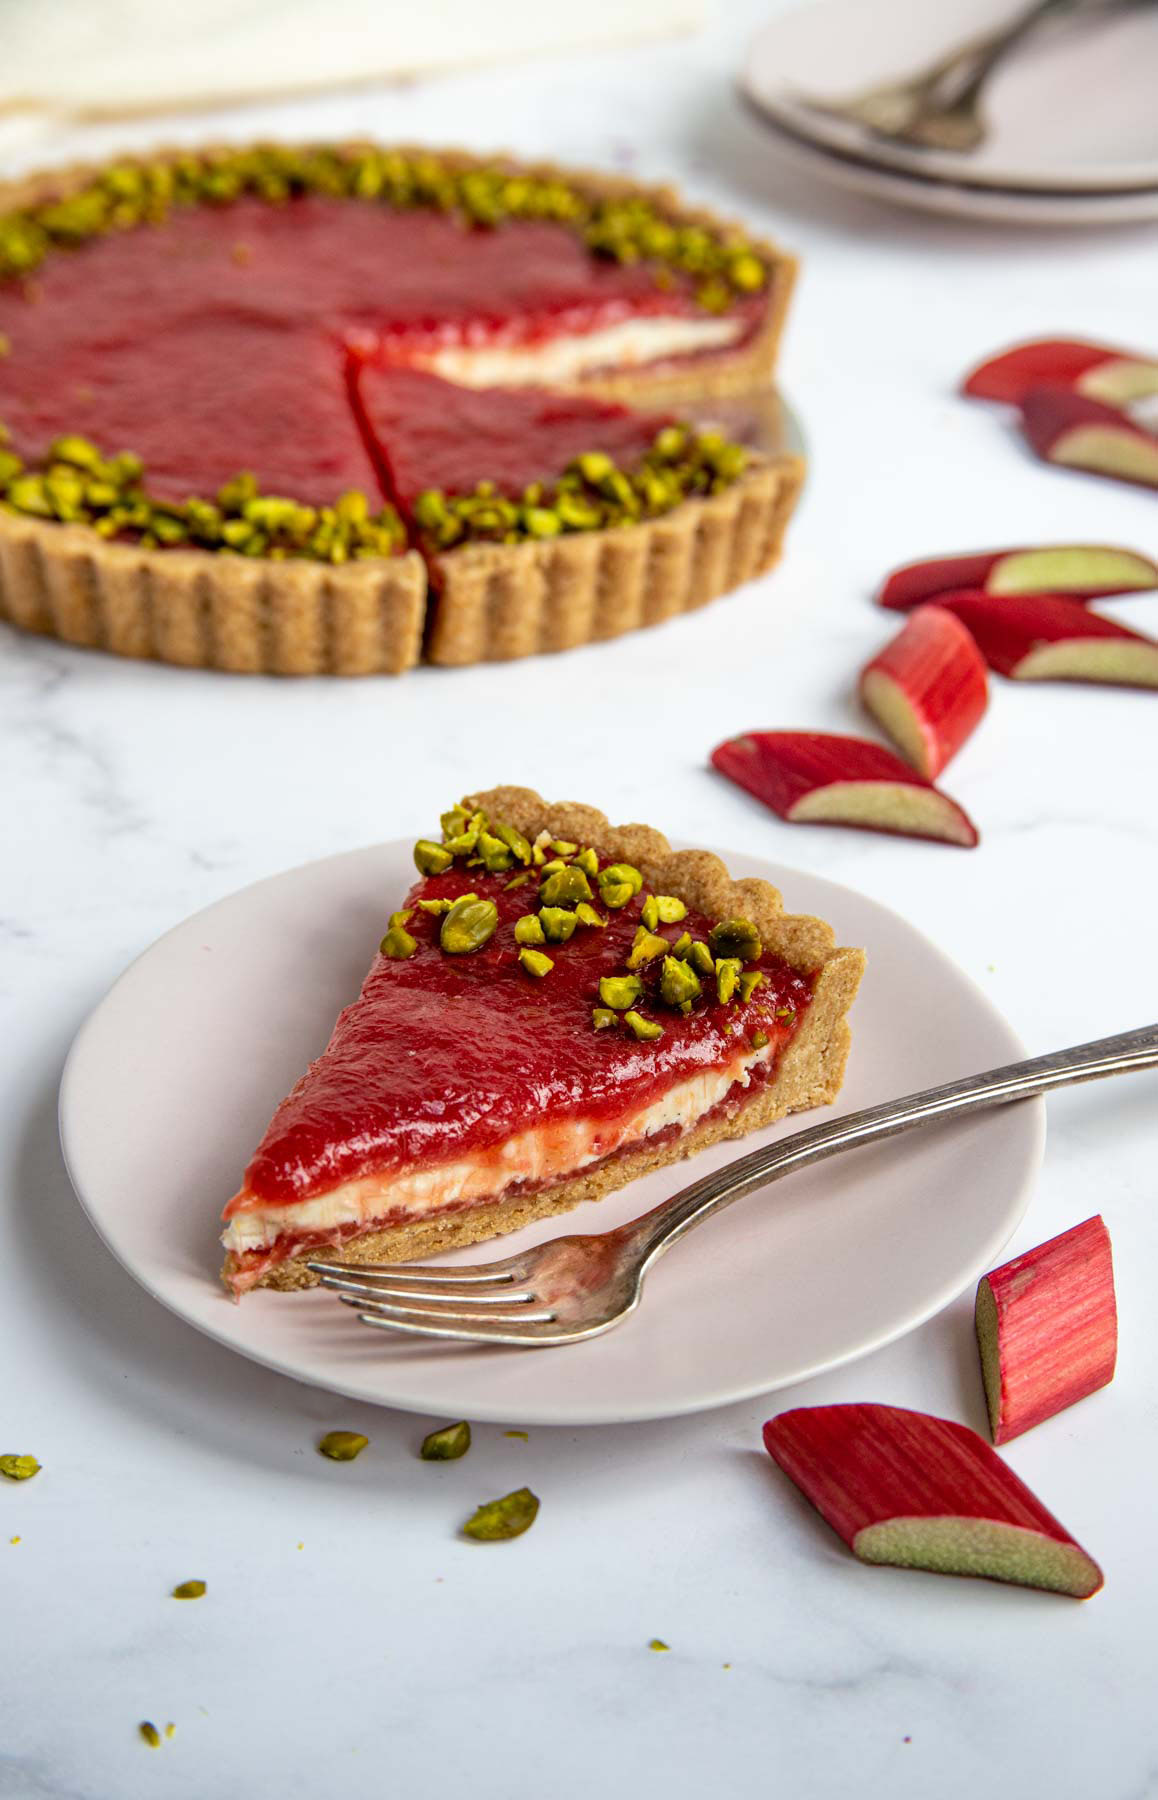 A slice of the rhubarb cream tart on a pink dessert plate with the tart in with chopped rhubarb and the rhubarb tart in the background.